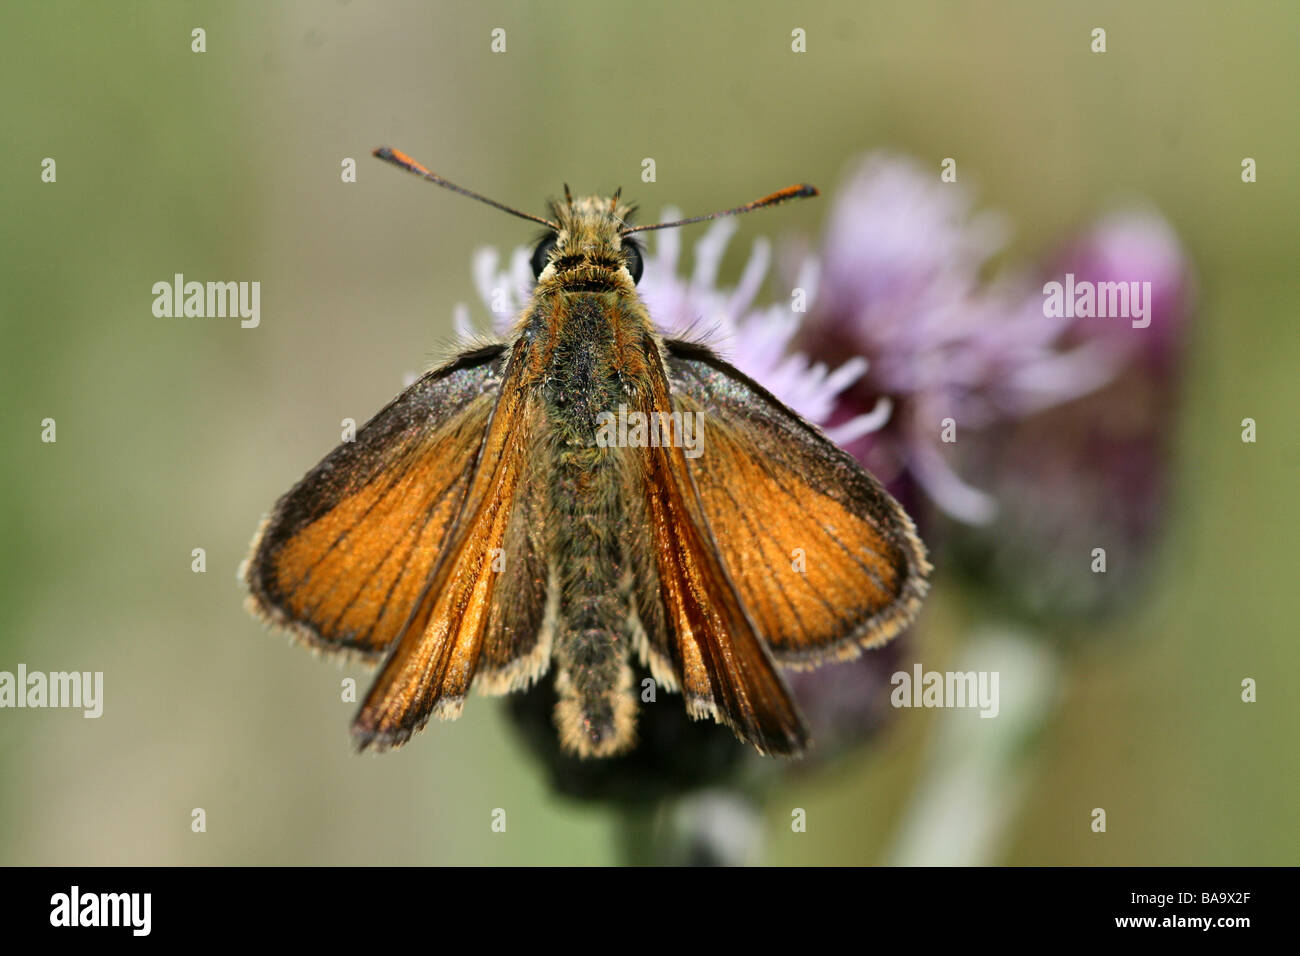 Small Skipper Thymelicus sylvestris on Creeping Thistle showing detail of forewings - Stock Image